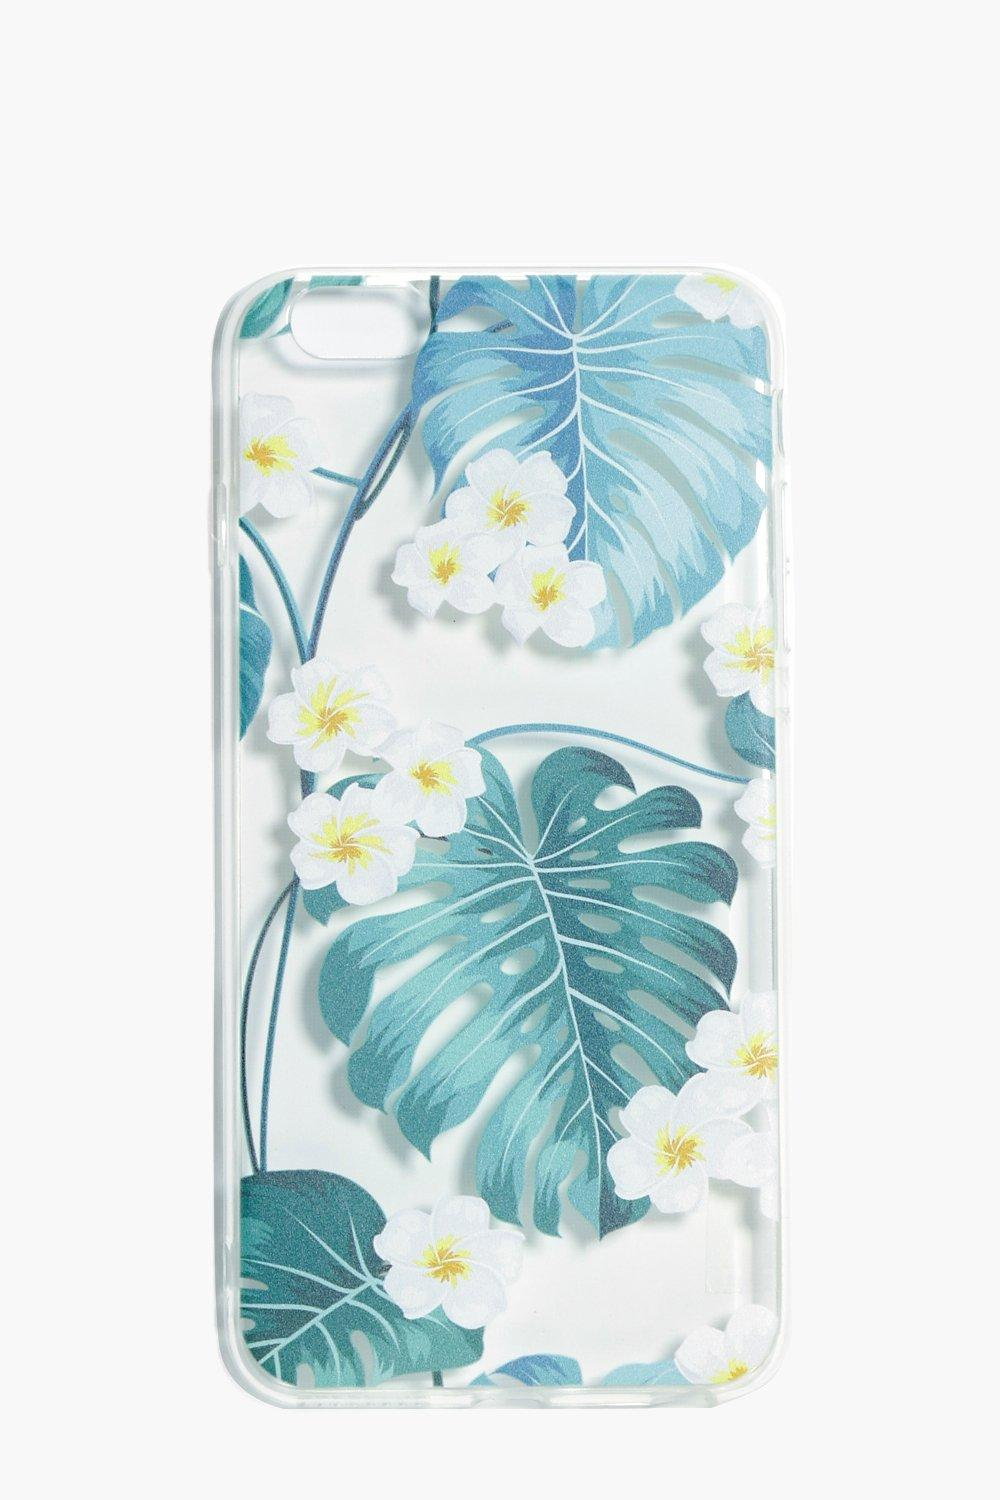 Leaf & Floral iPhone 6 Plus Case - clear - Tropica